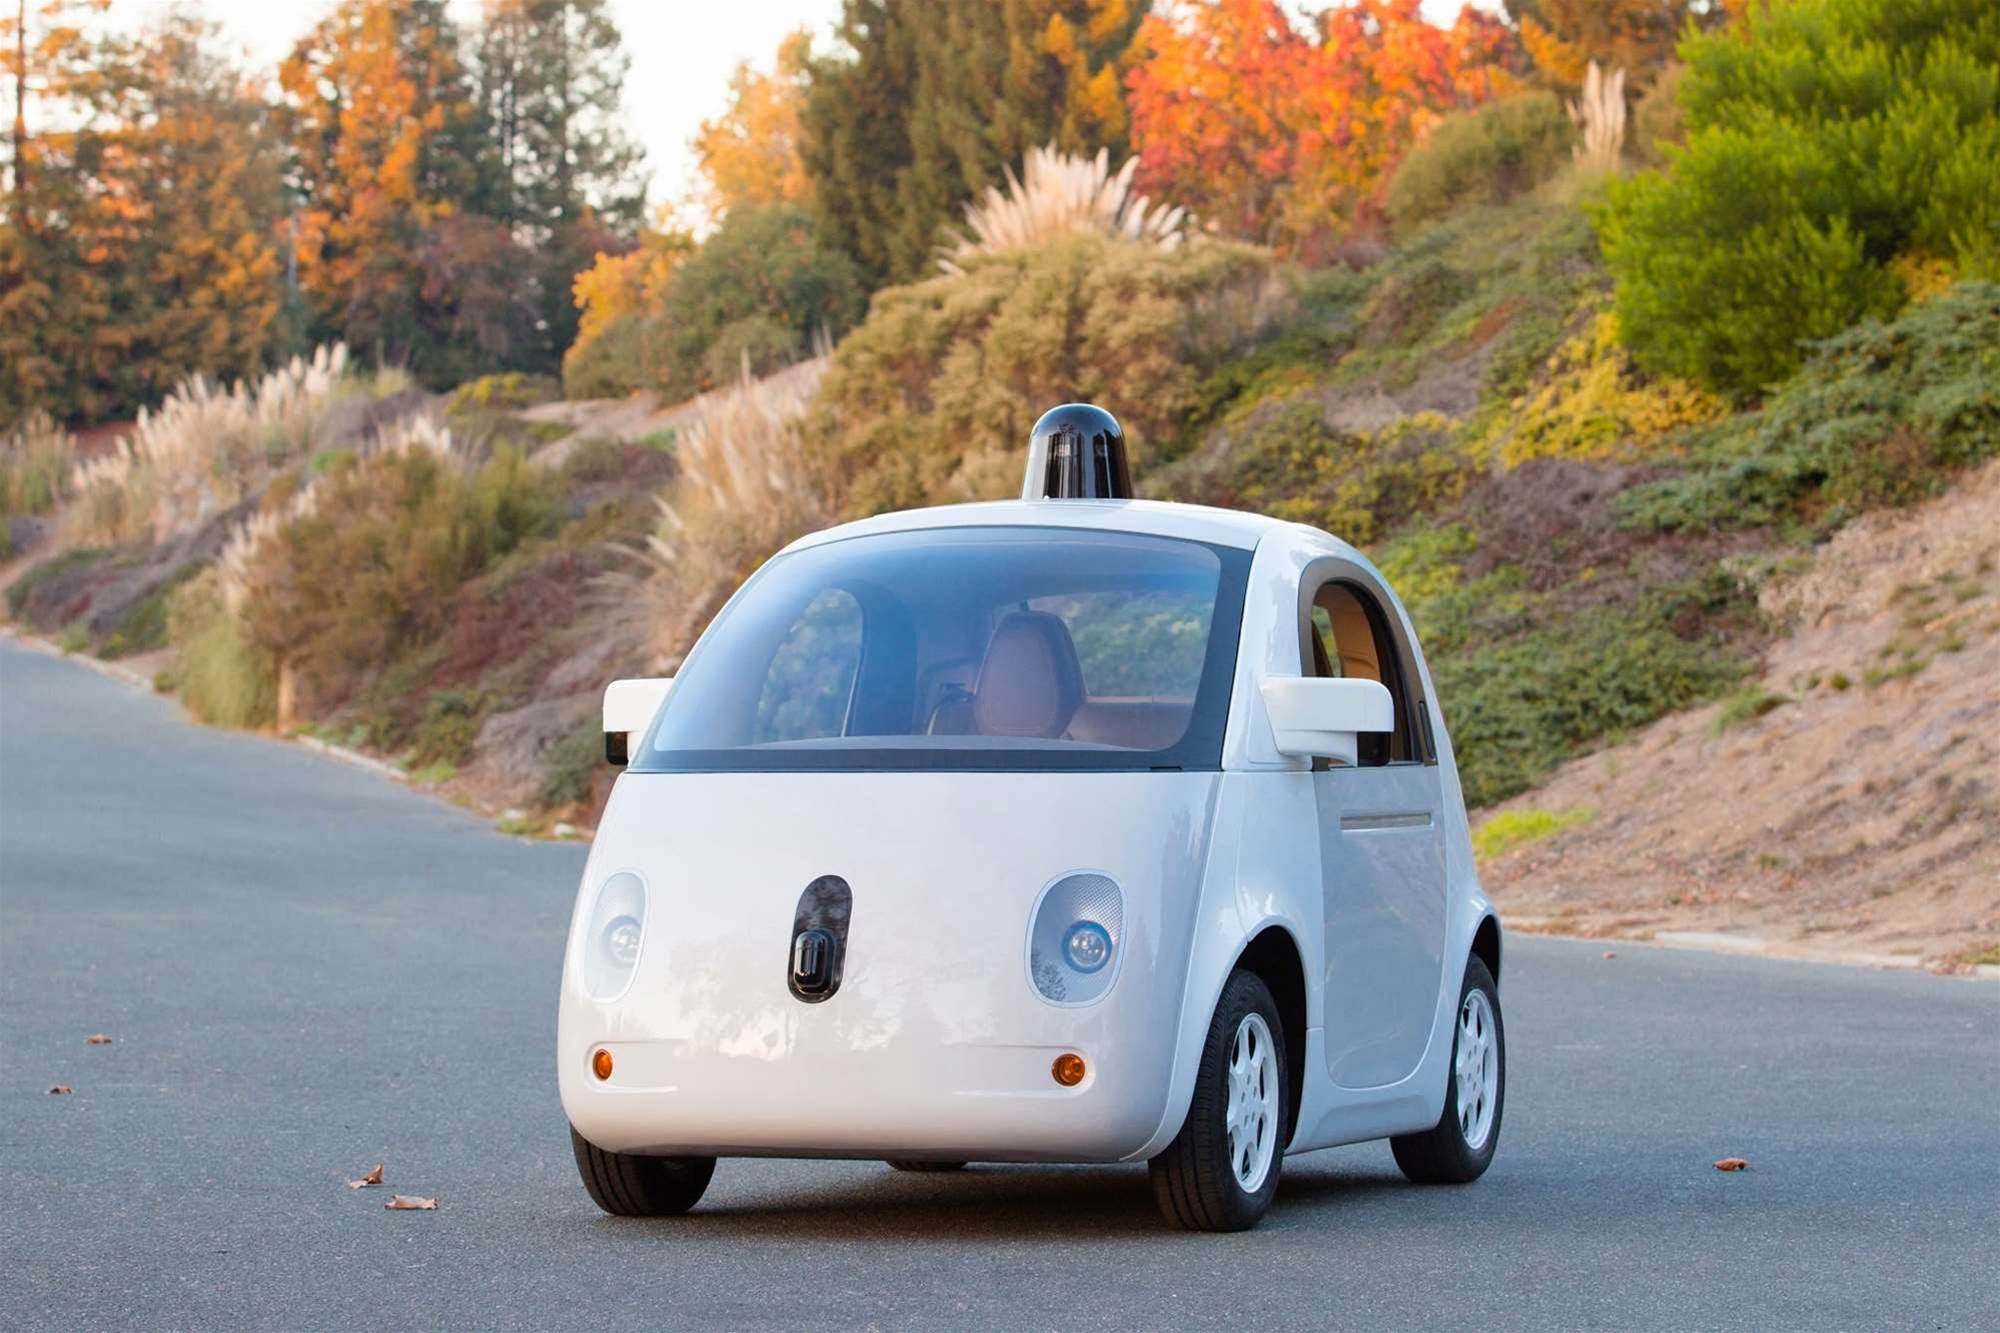 Photos: The race for driverless cars